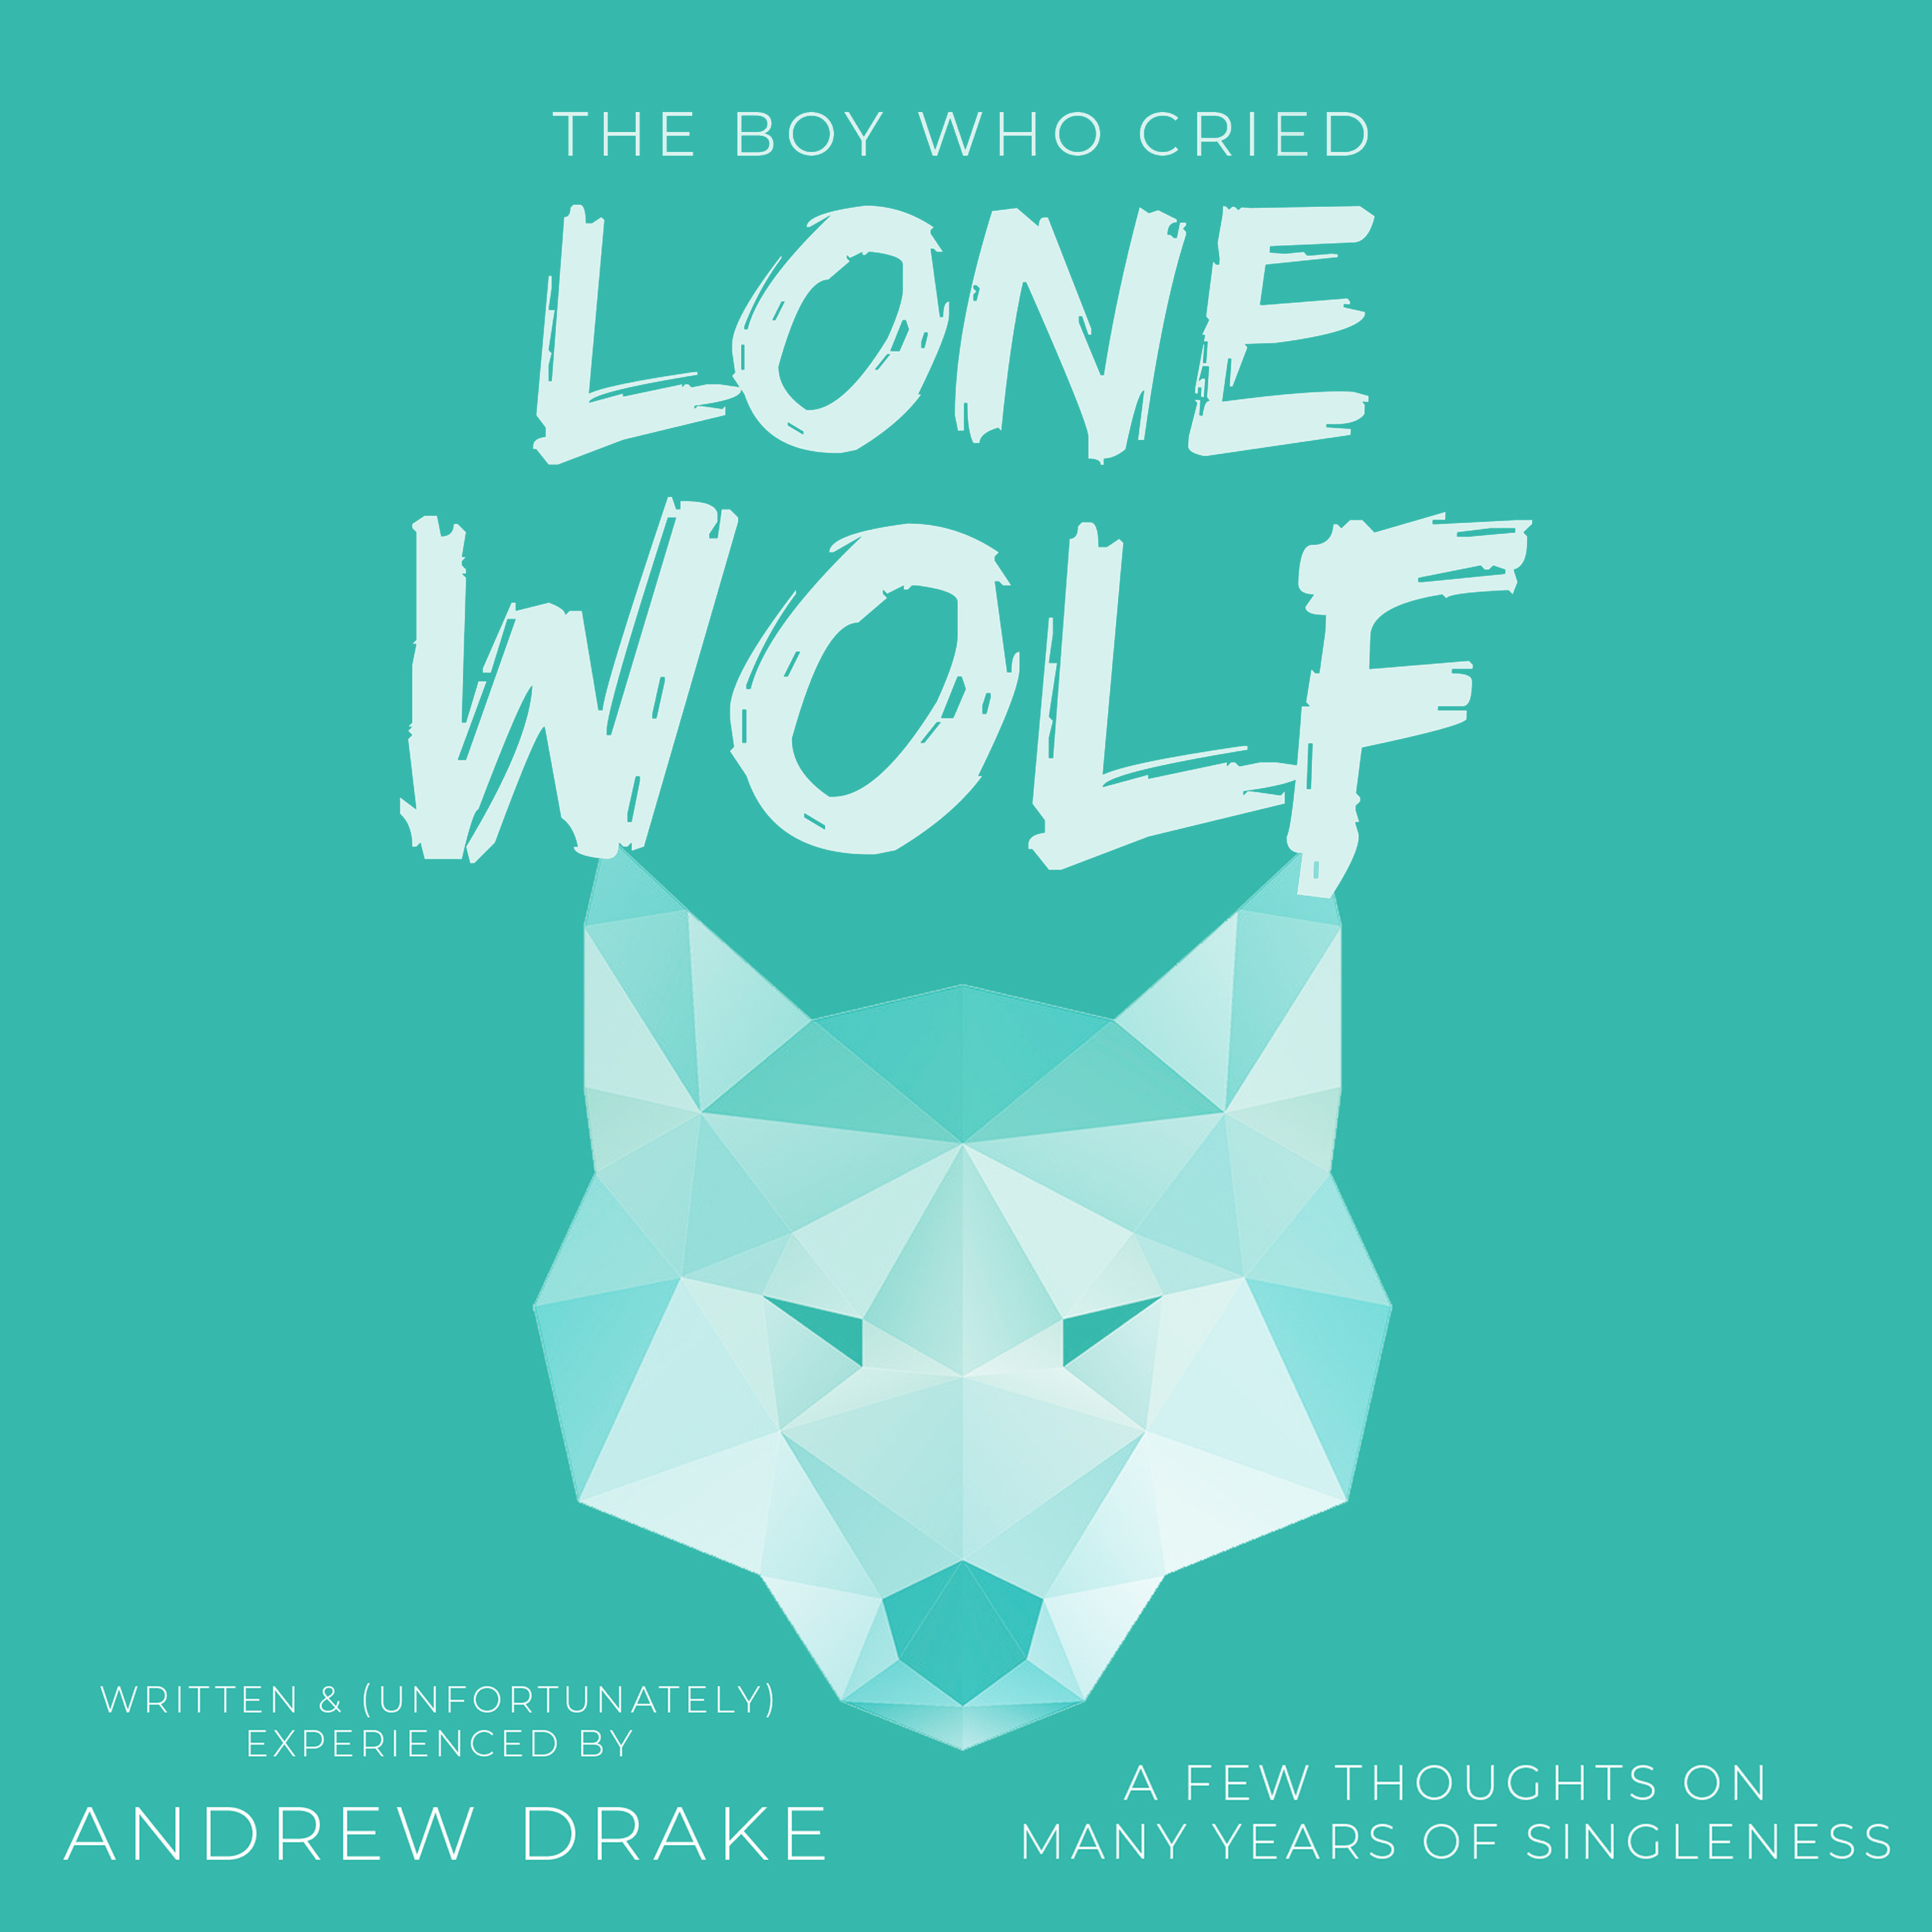 The Boy Who Cried Lone Wolf - First Chapter